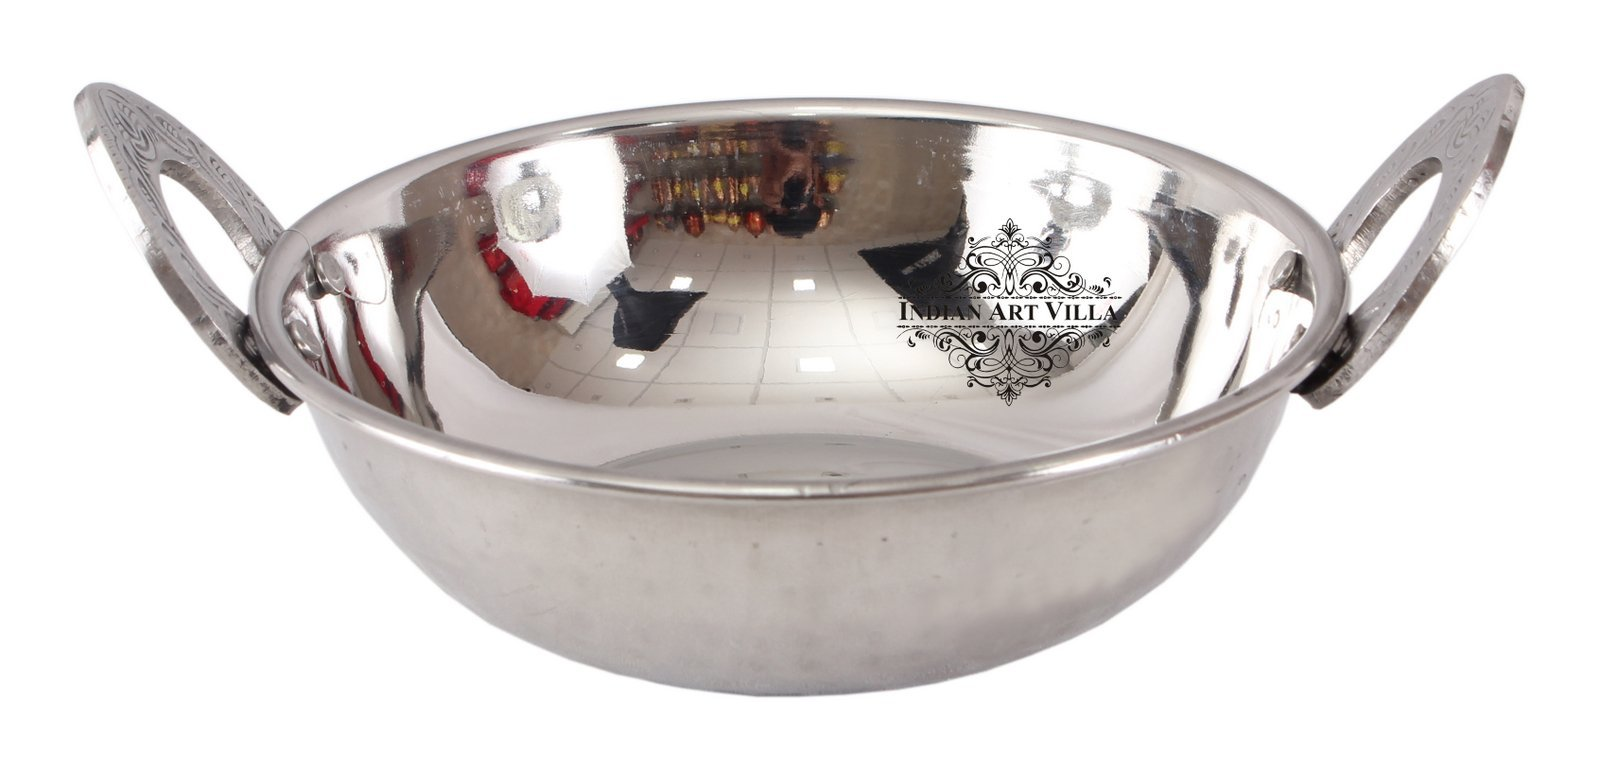 IndianArtVilla S/S Double Wall Kadhai Wok with Designer Handle|540 ML Capacity|Serving Dishes